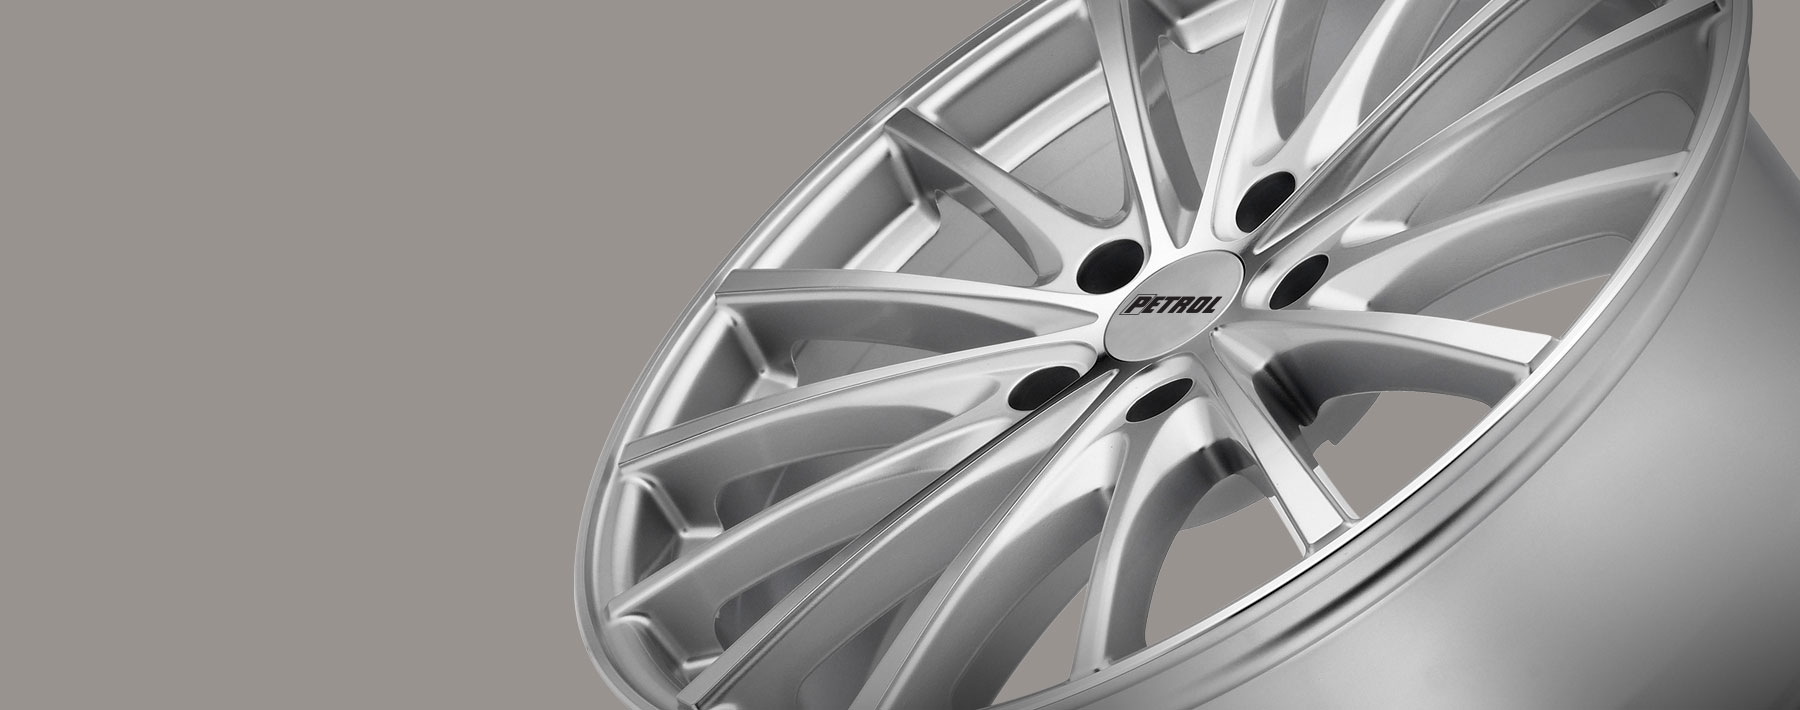 Aftermarket wheels by Petrol